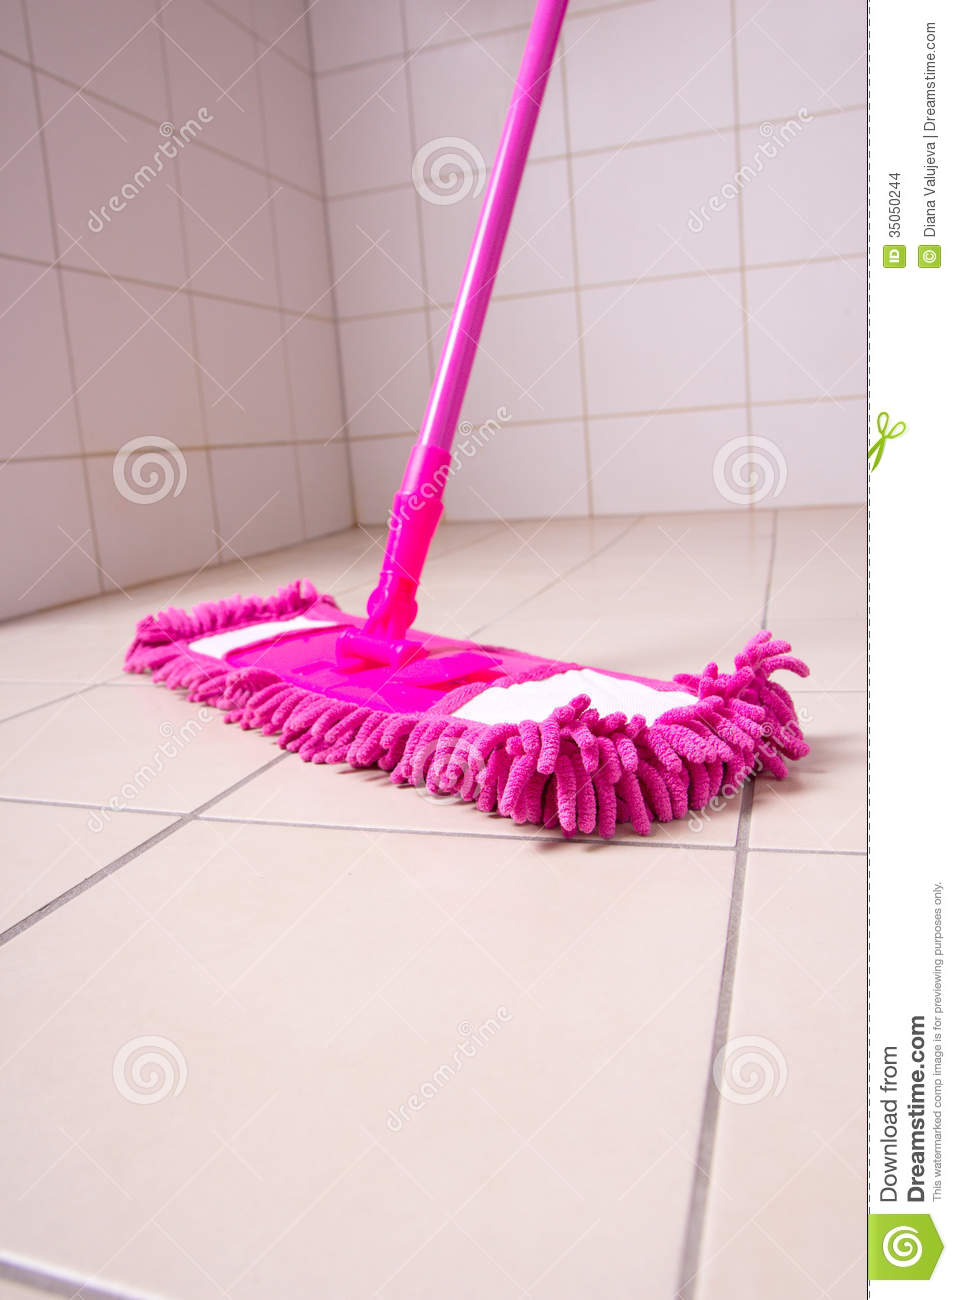 Pink mop cleaning tile floor in bathroom stock photo image 35050244 pink mop cleaning tile floor in bathroom dailygadgetfo Images